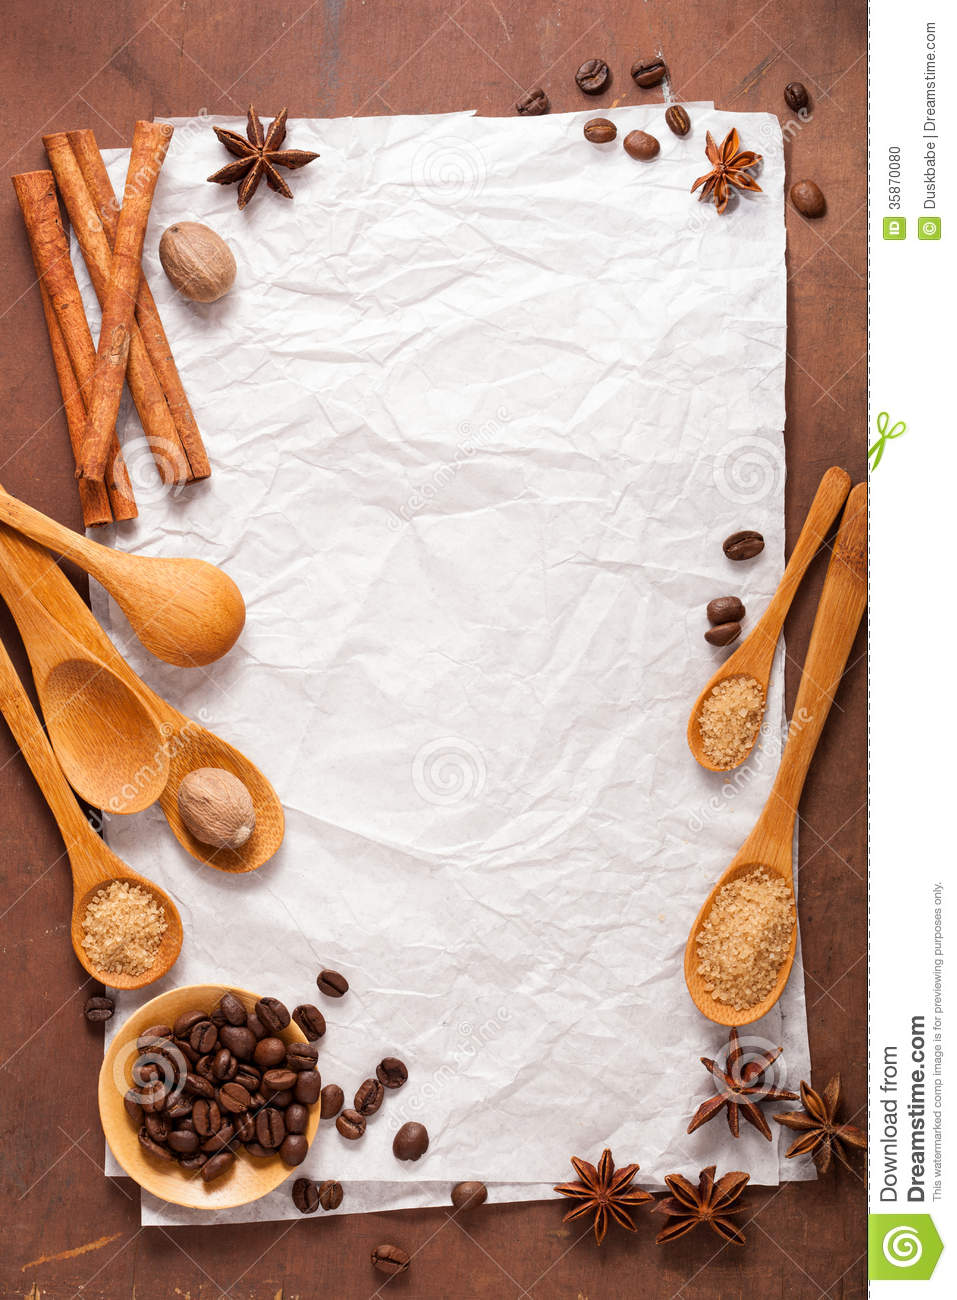 blank paper for recipes over wooden background with coffee